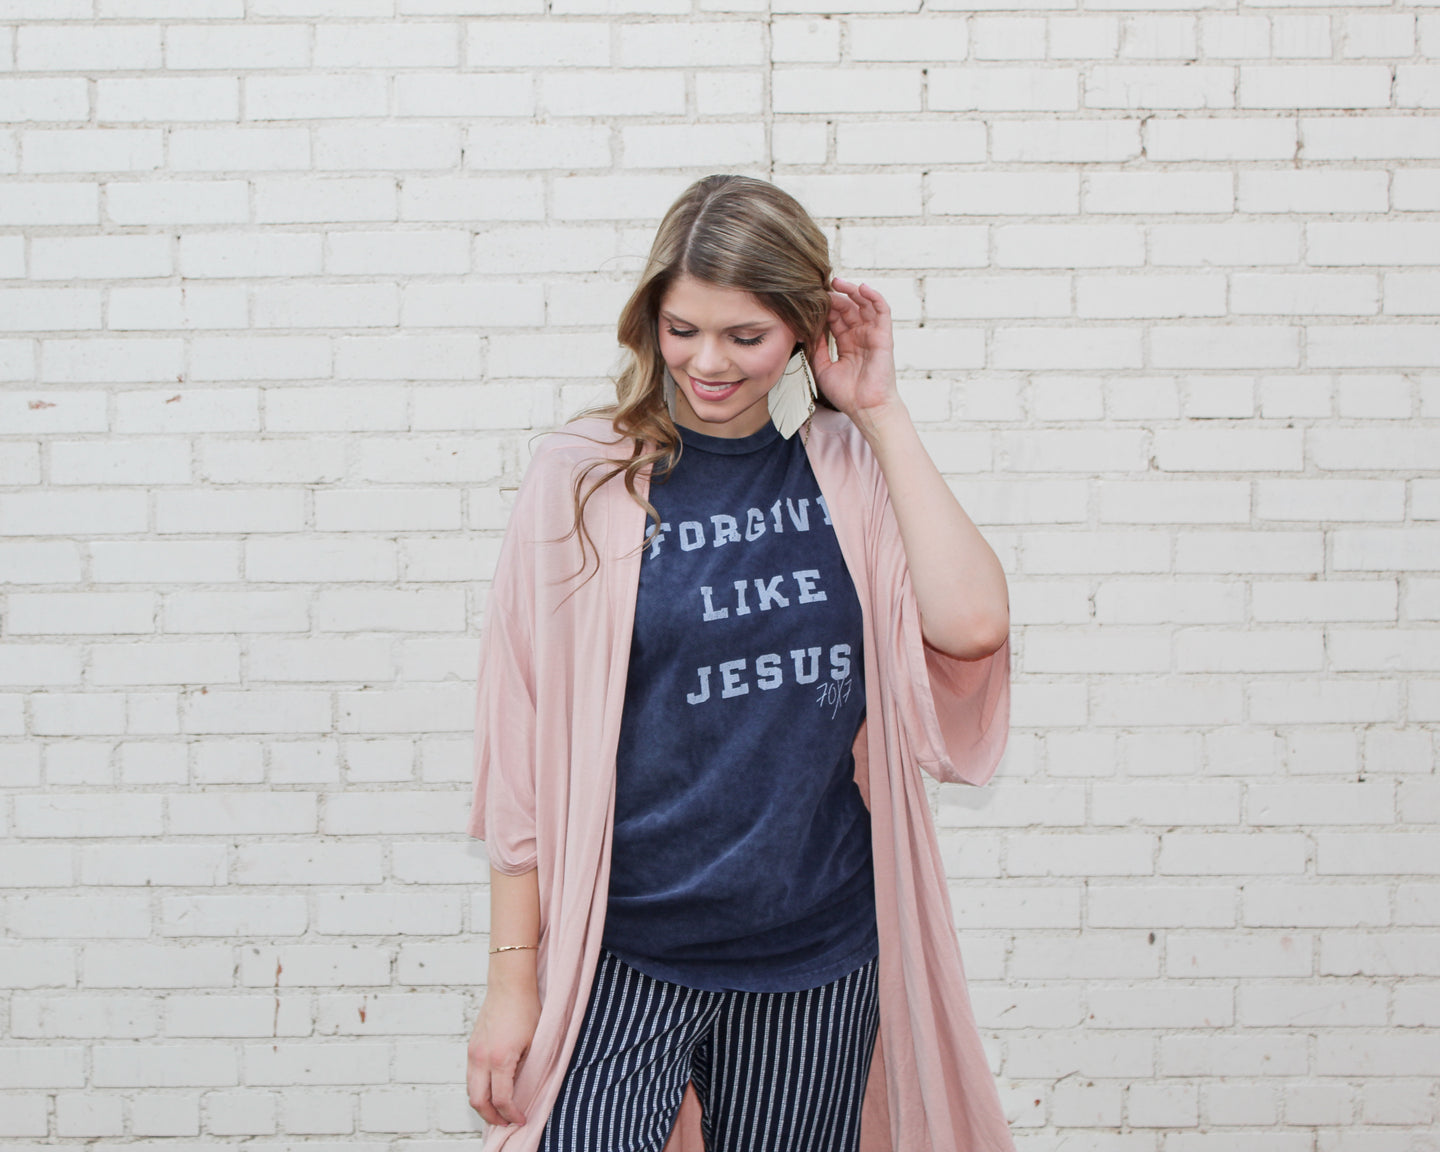 Forgive like Jesus (Scoop Bottom)